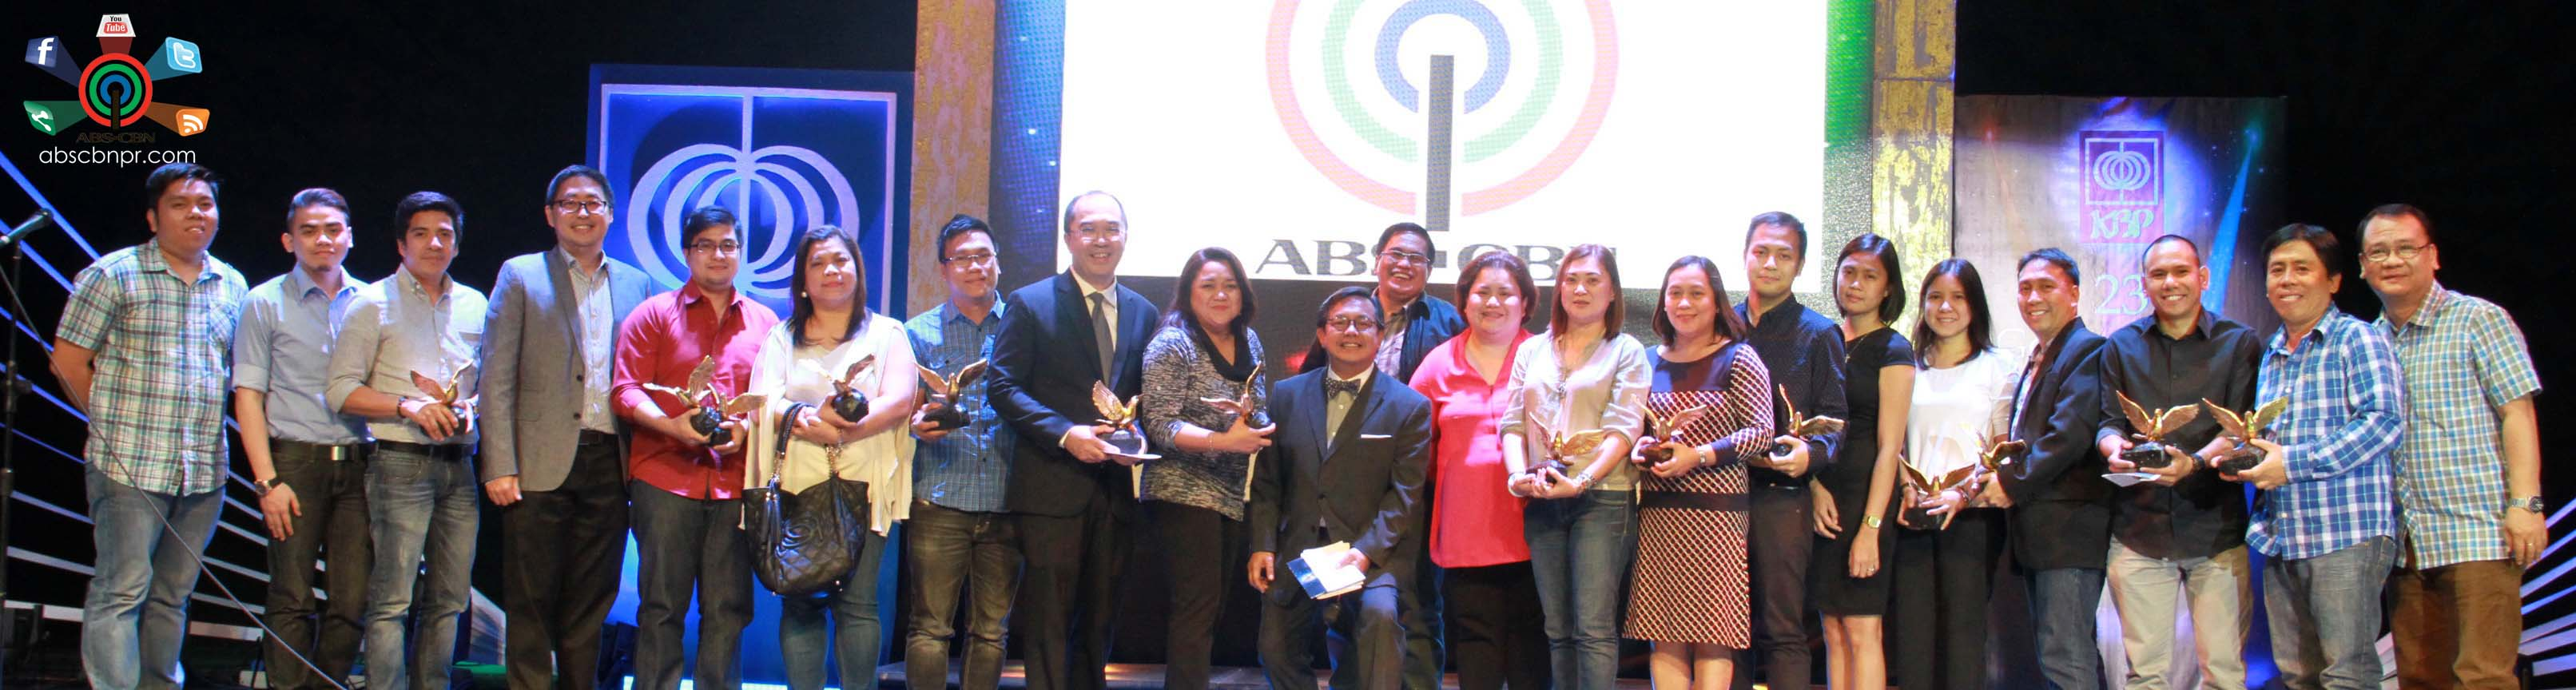 ABS-CBN wins the Best TV Station at the 23rd Golden Dove Awards